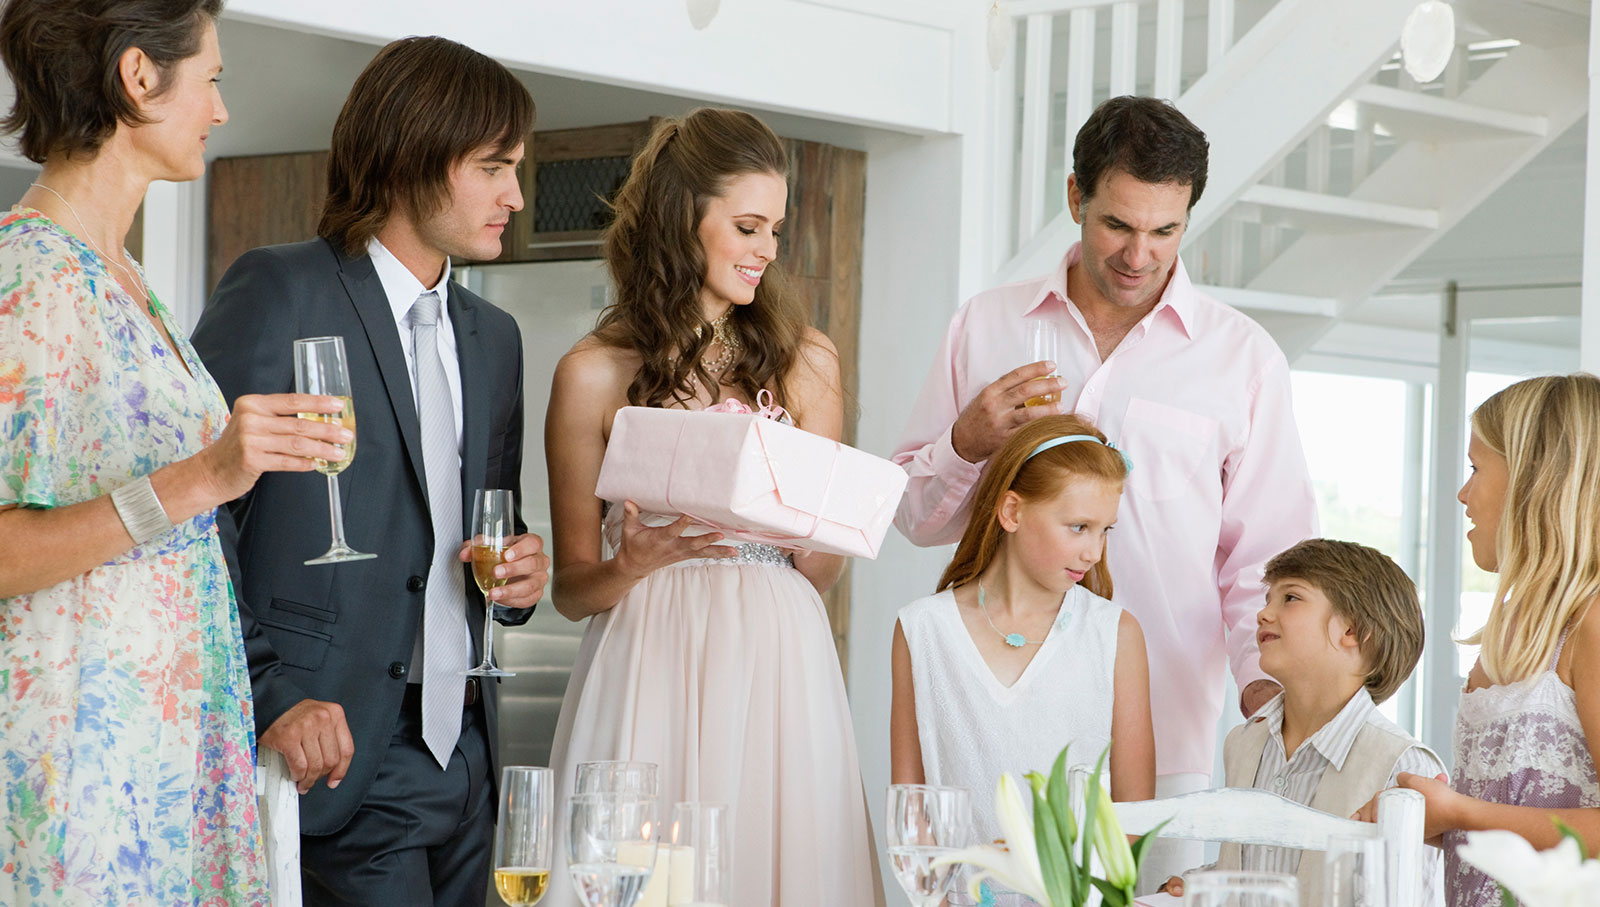 How Much To Spend On Wedding Gifts: How Much Should You Spend On Wedding Gifts?